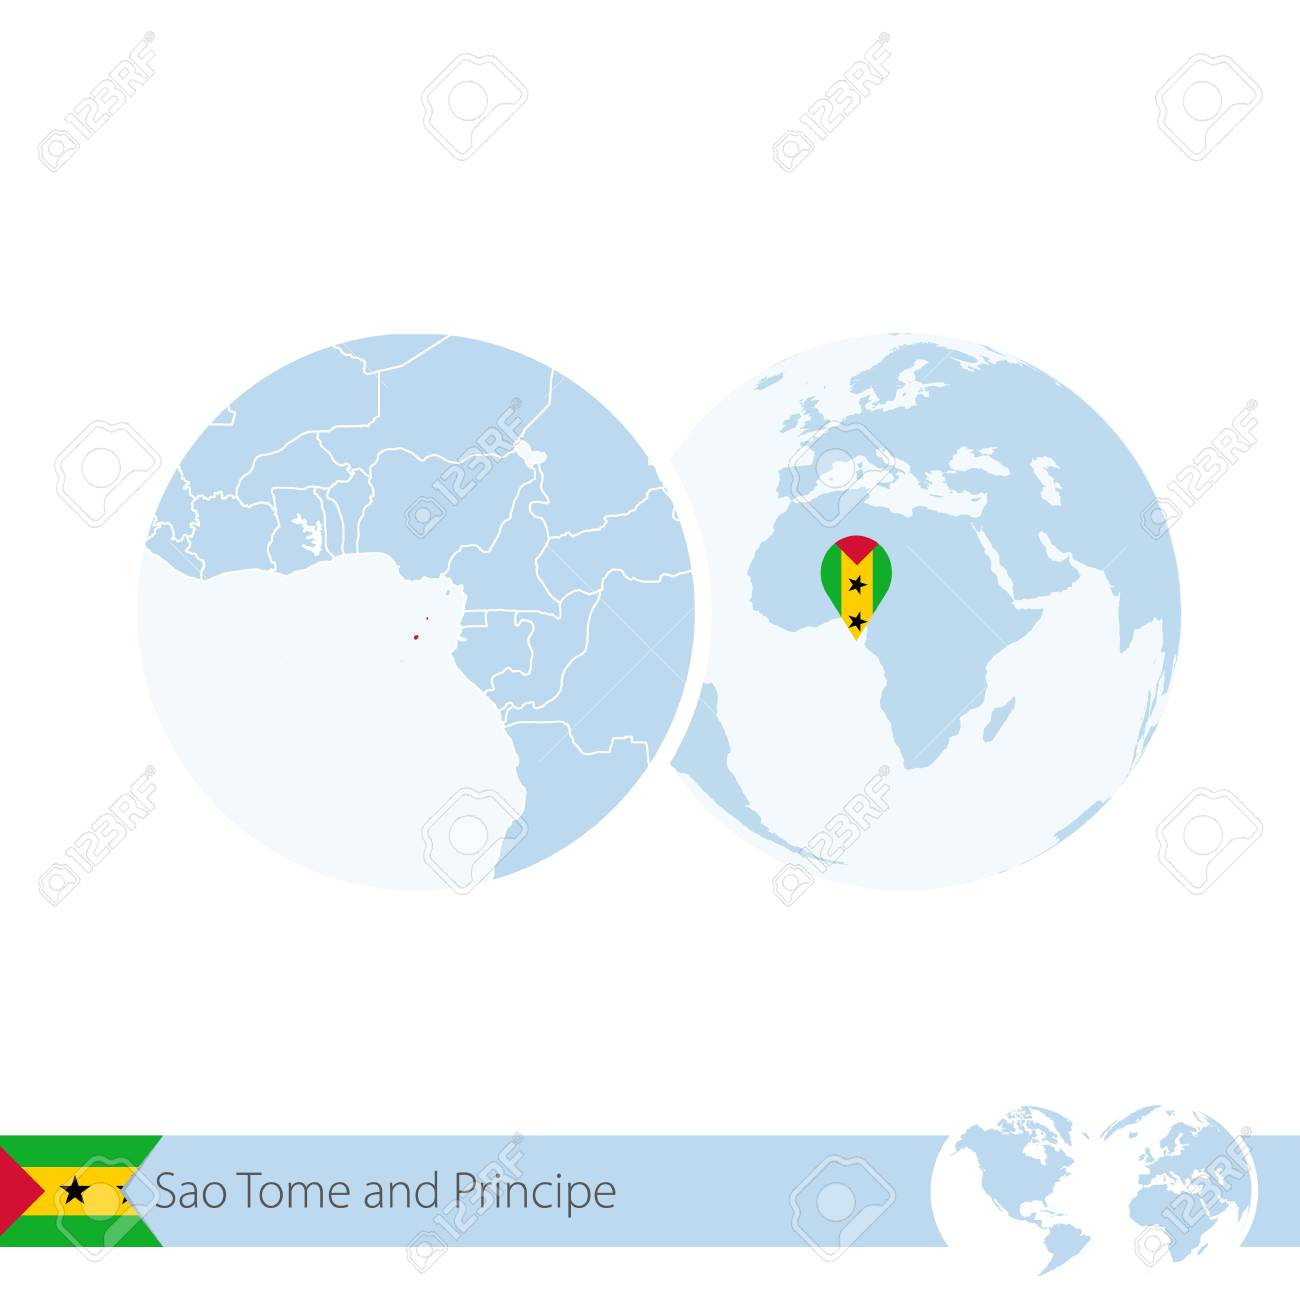 Sao Tome and Principe on world globe with flag and regional map.. Sao Tome And Principe On World Map on bahia on world map, united republic of tanzania on world map, isle of man on world map, turks and caicos islands on world map, northern mariana islands on world map, british virgin islands on world map, antigua and barbuda on world map, manama on world map, freetown on world map, cocos islands on world map, reunion on world map, sao tome e principe flag, british guiana on world map, democratic republic of the congo on world map, saint kitts and nevis on world map, mayotte on world map, holy see on world map, republic of korea on world map, principe island map, northern ireland on world map,